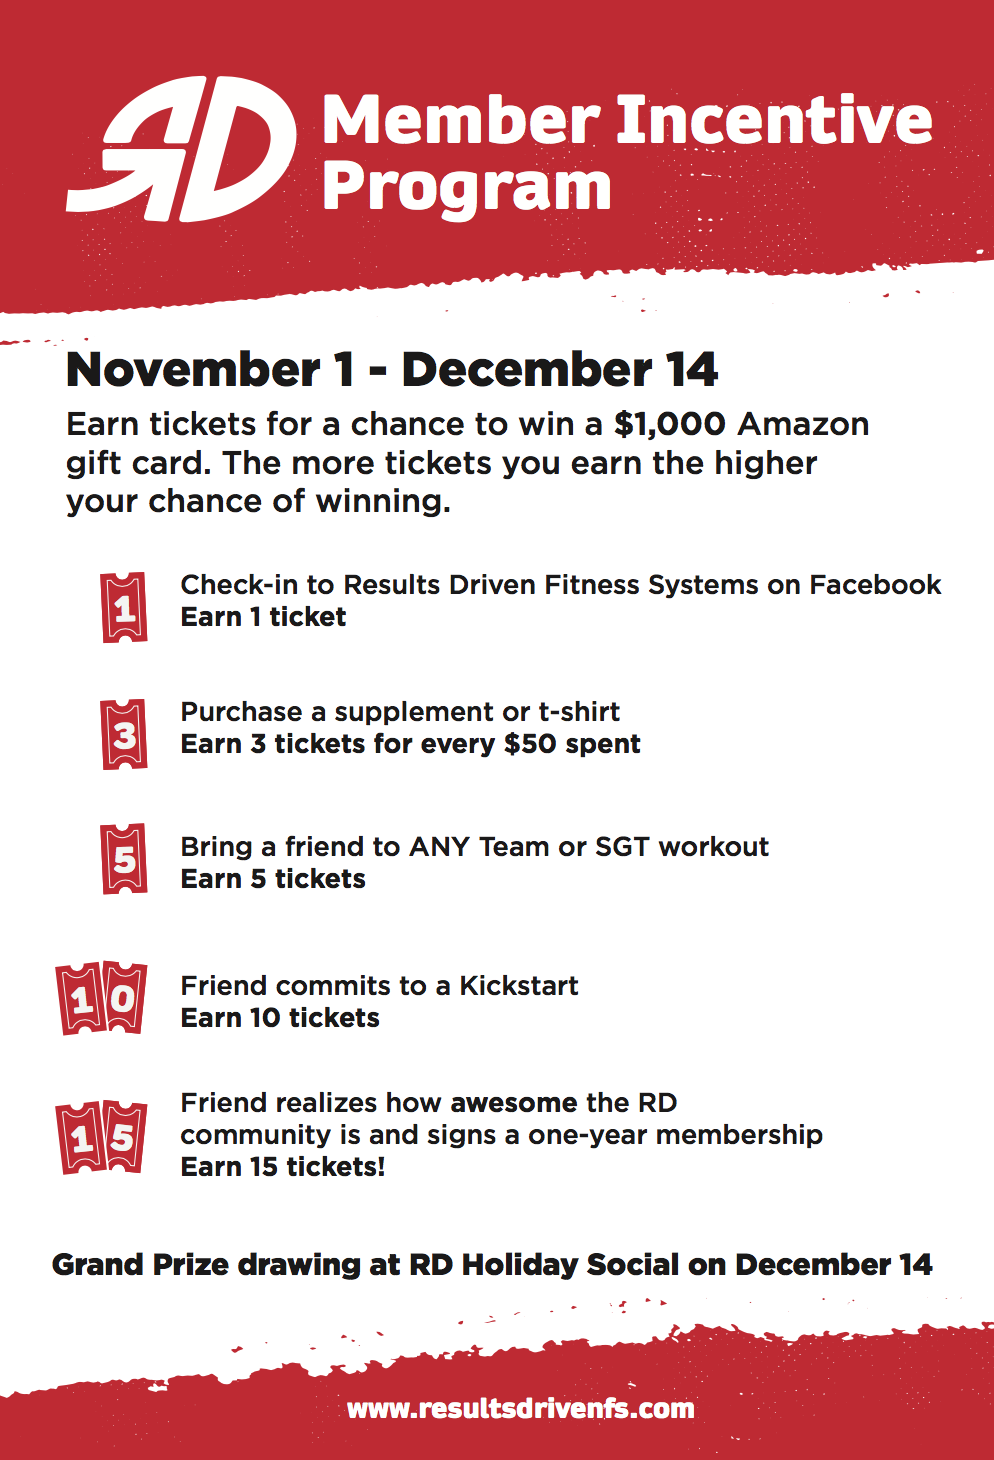 RD's Member Incentive Program - Here's your chance to win a $1000 Amazon Gift Card just by taking advantage of your membership! Here's how it works:There are 5 ways you can earn tickets:1)